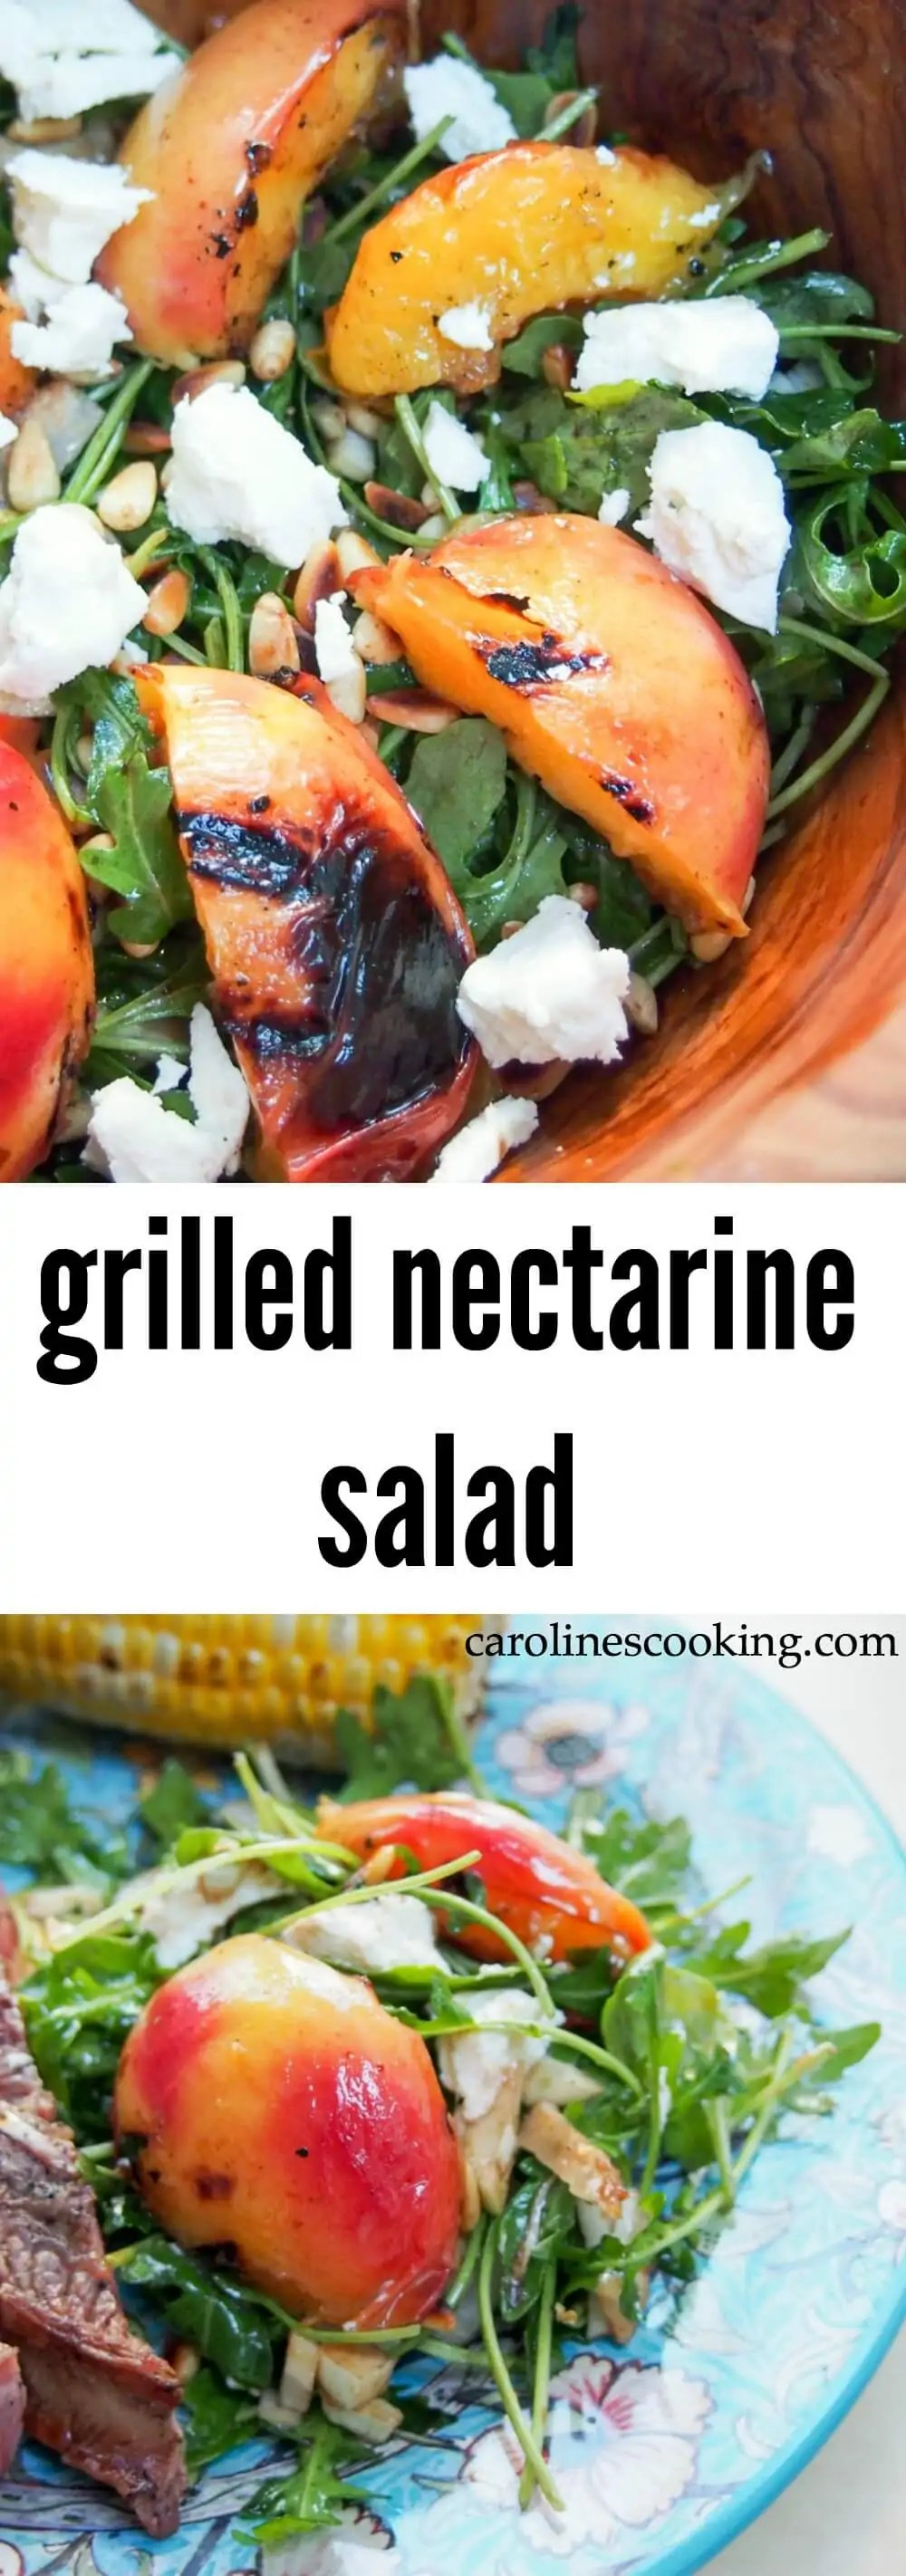 This grilled nectarine salad makes the perfect summer side: sweet, juicy nectarines, peppery arugula, smooth goat's cheese & crunchy pine nuts.